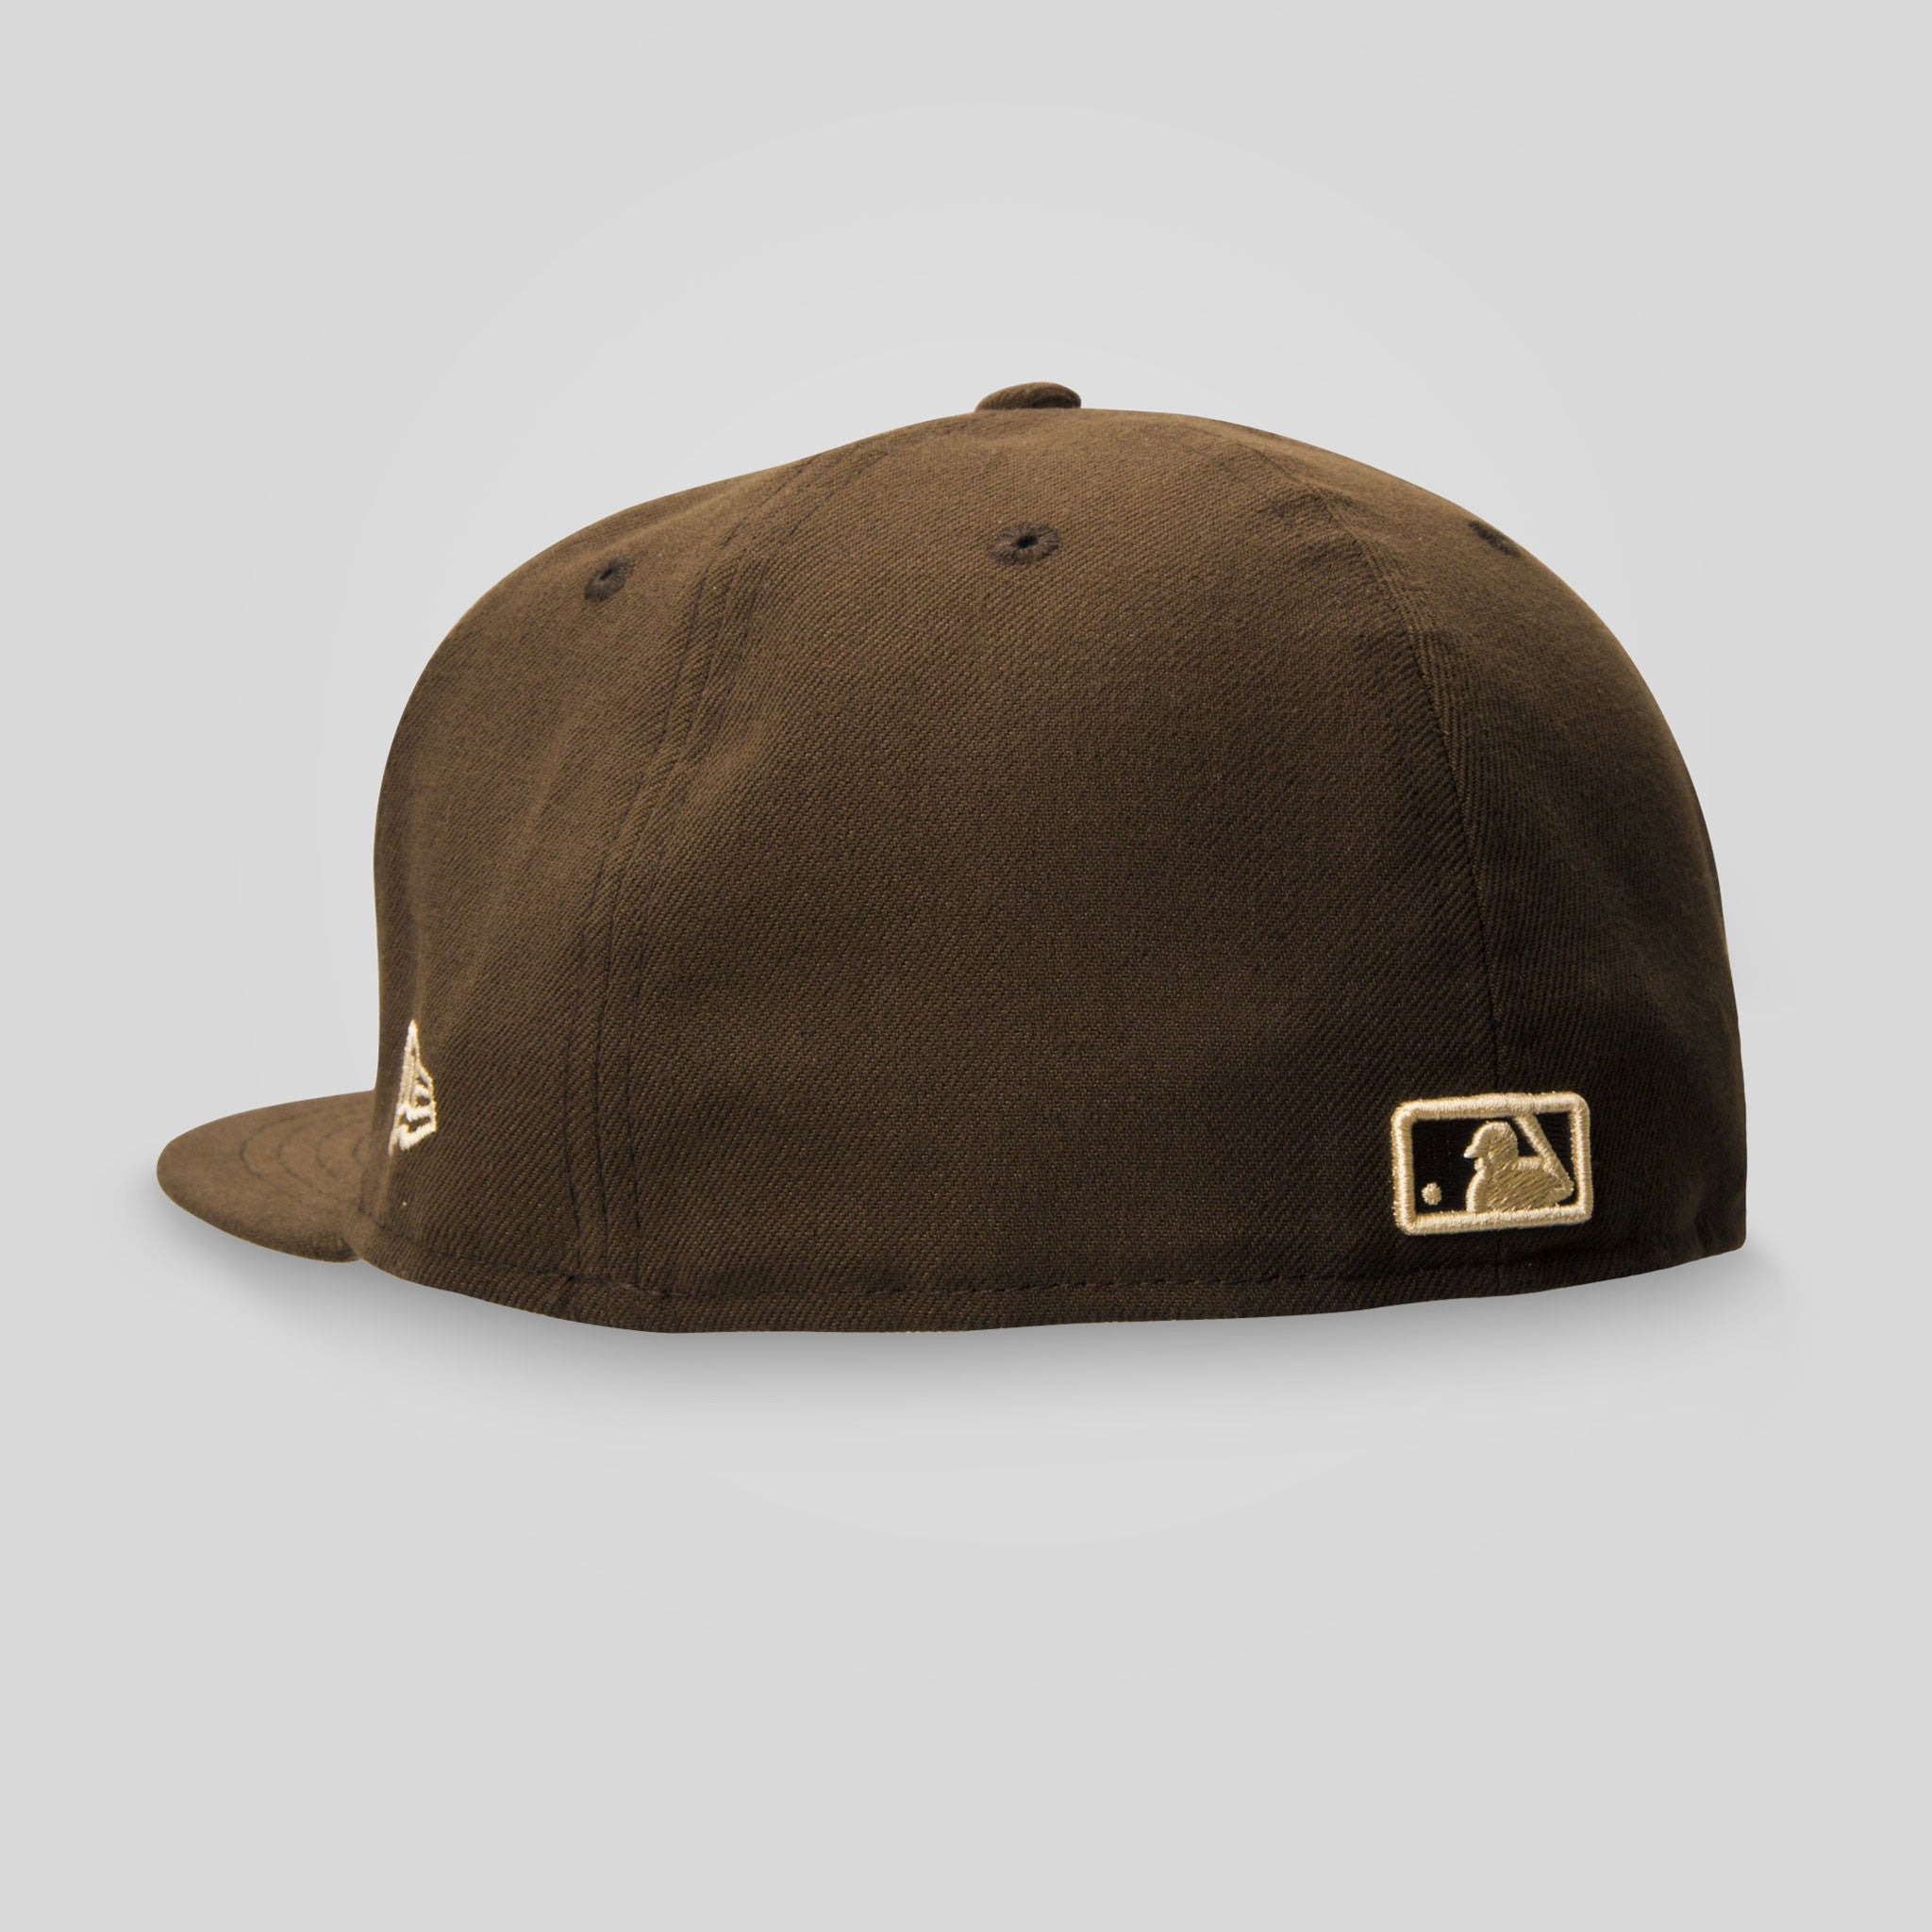 6d3f365d56e8b5 SF Giants New Era Fitted Cap in Brown/Desert Camo